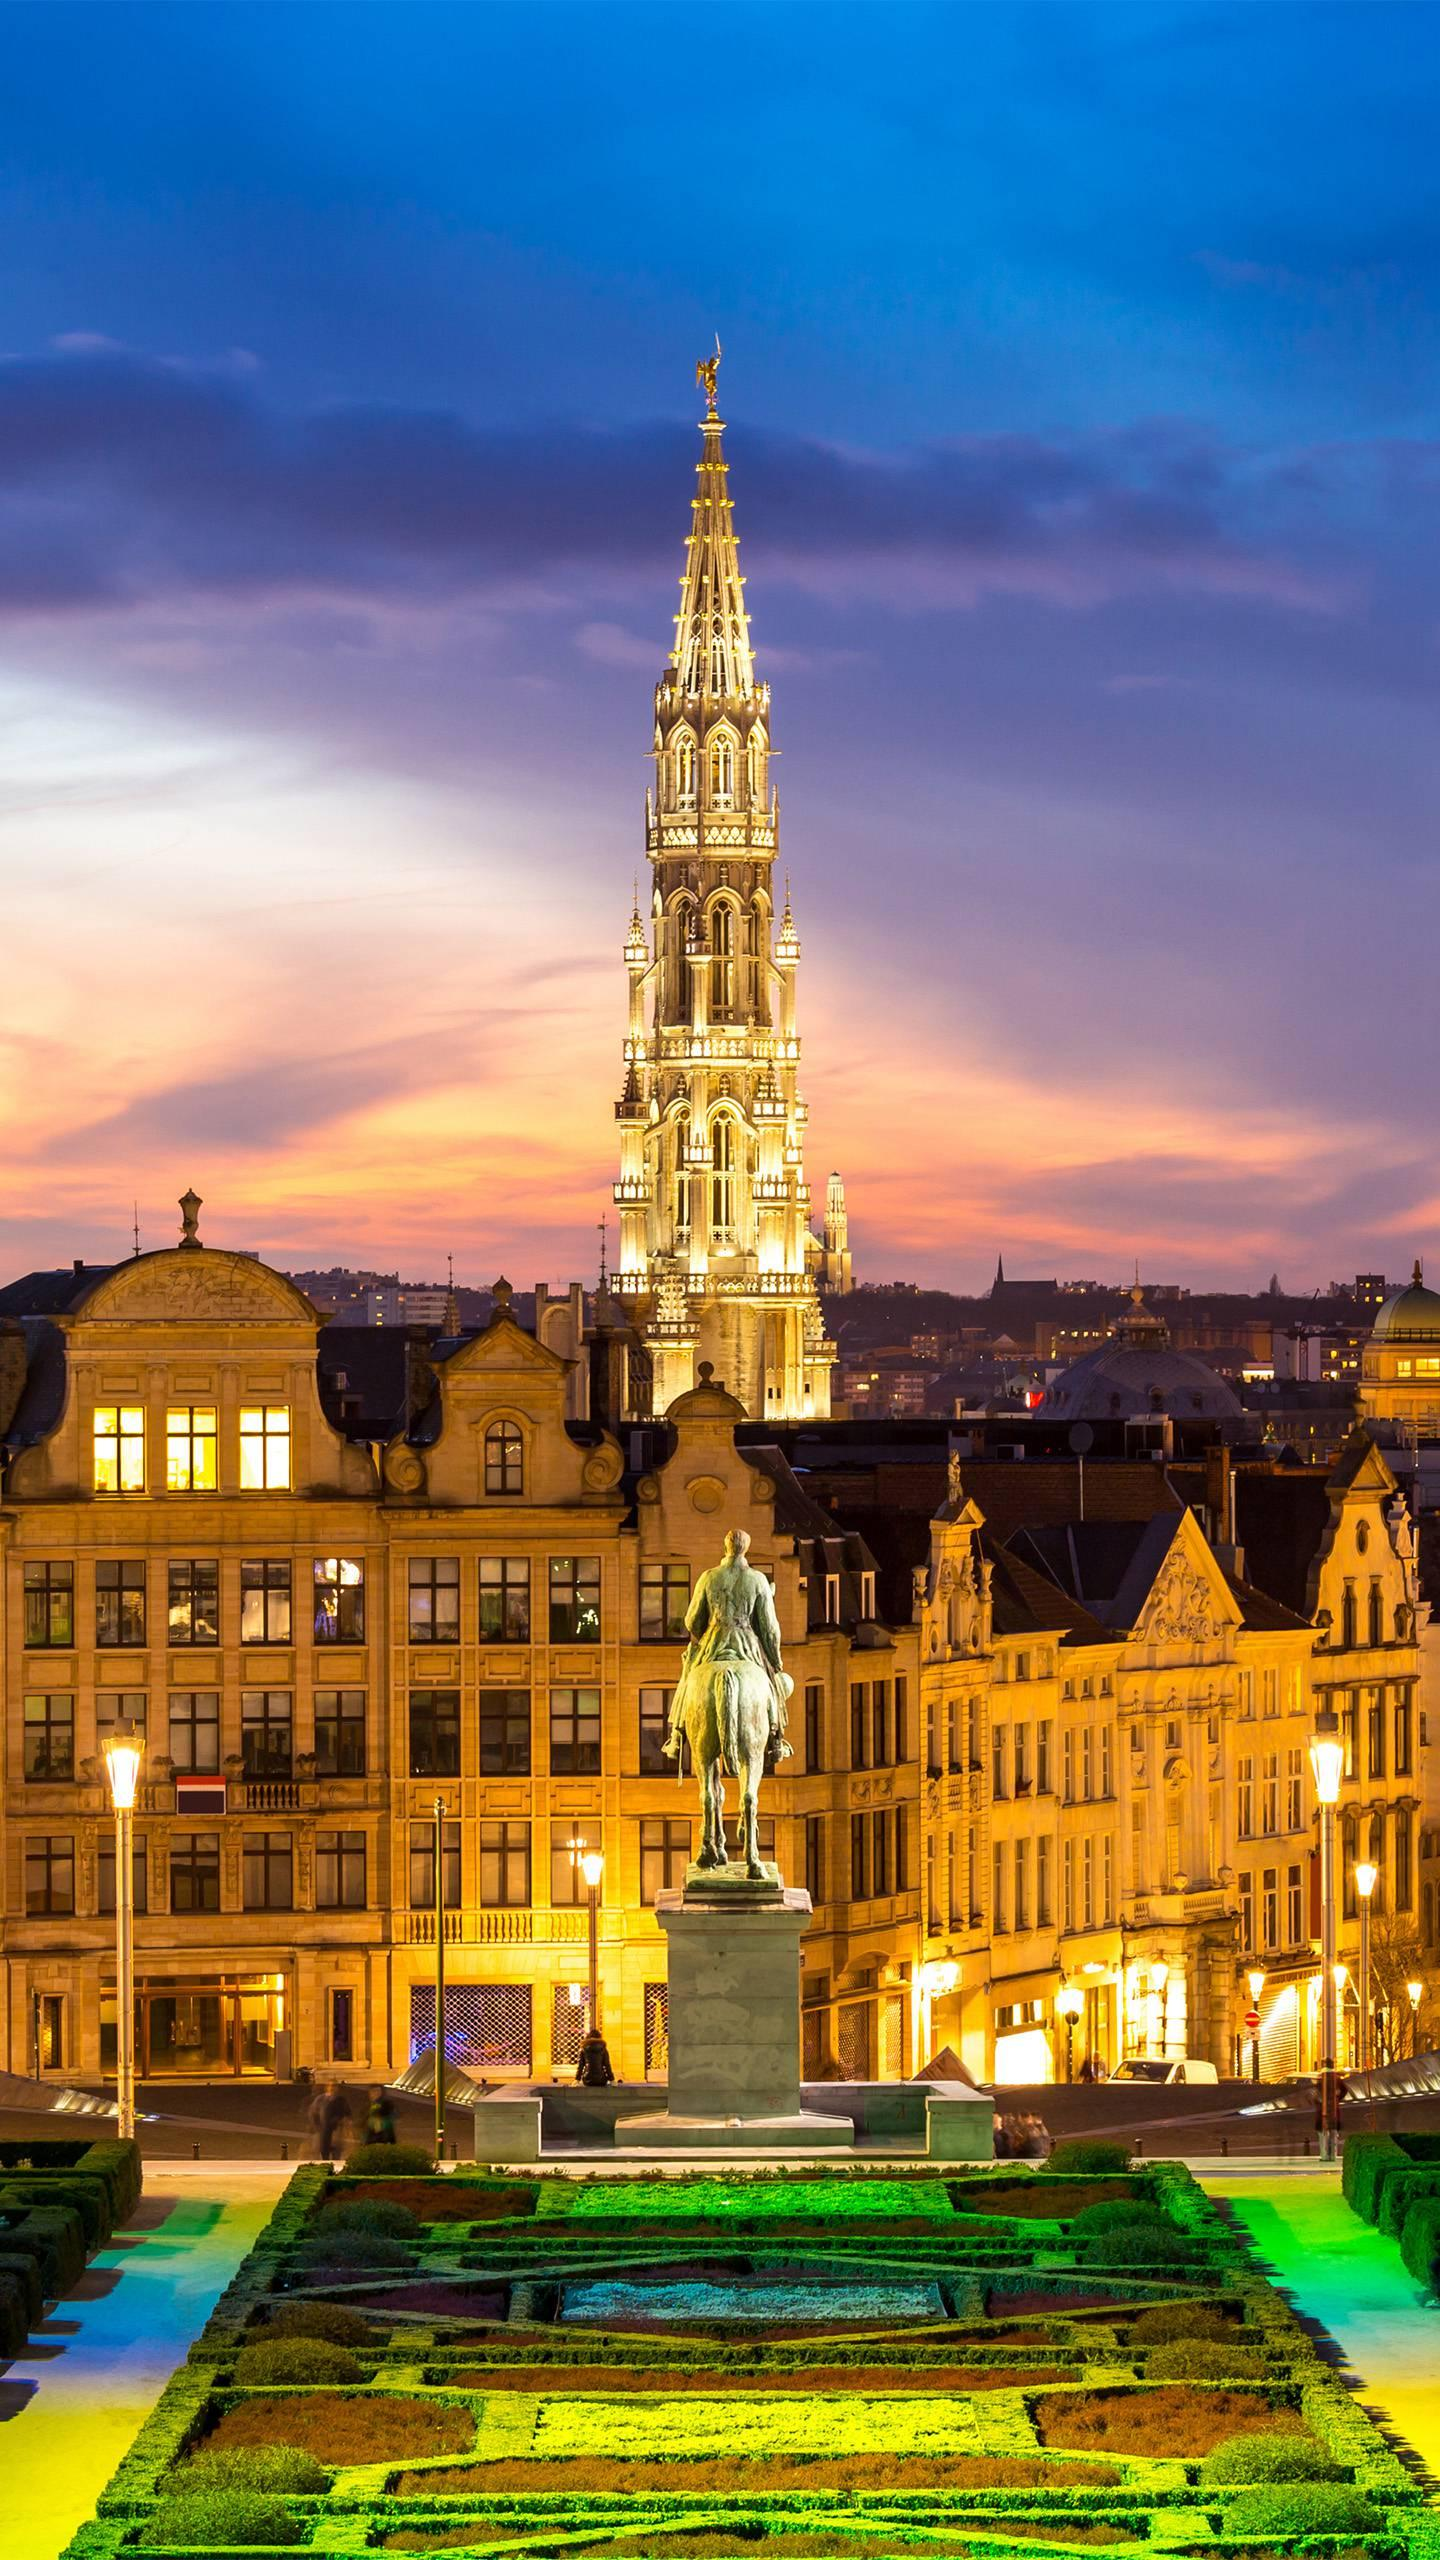 Brussels, Belgium. With the most beautiful buildings and museums in Europe, it retains many ancient buildings left over from the Middle Ages.